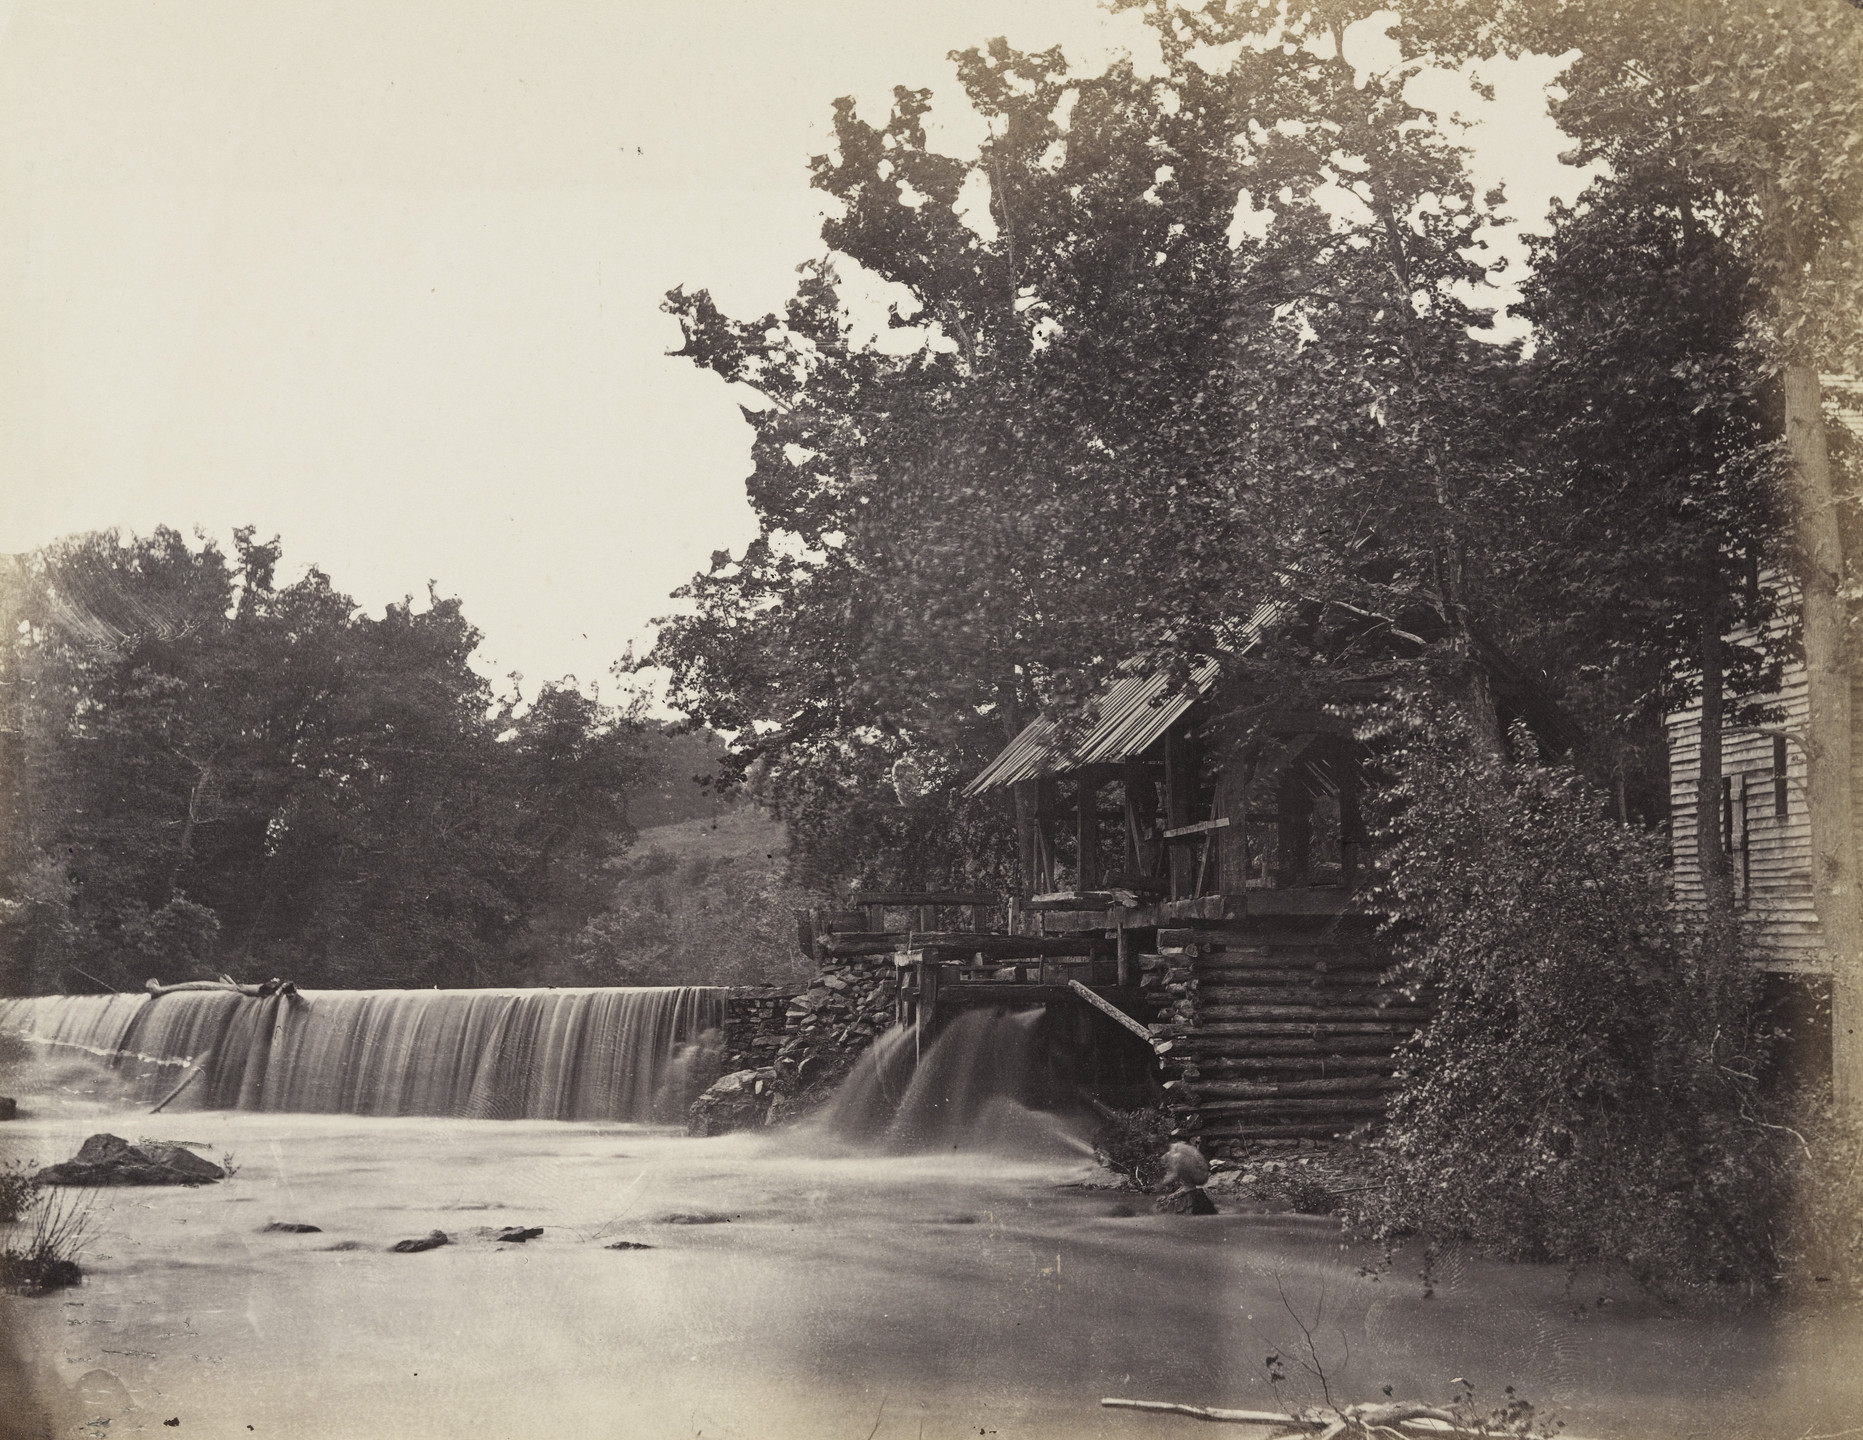 Alexander Gardner. Quarles' Mill, North Anna, Virginia. May, 1864